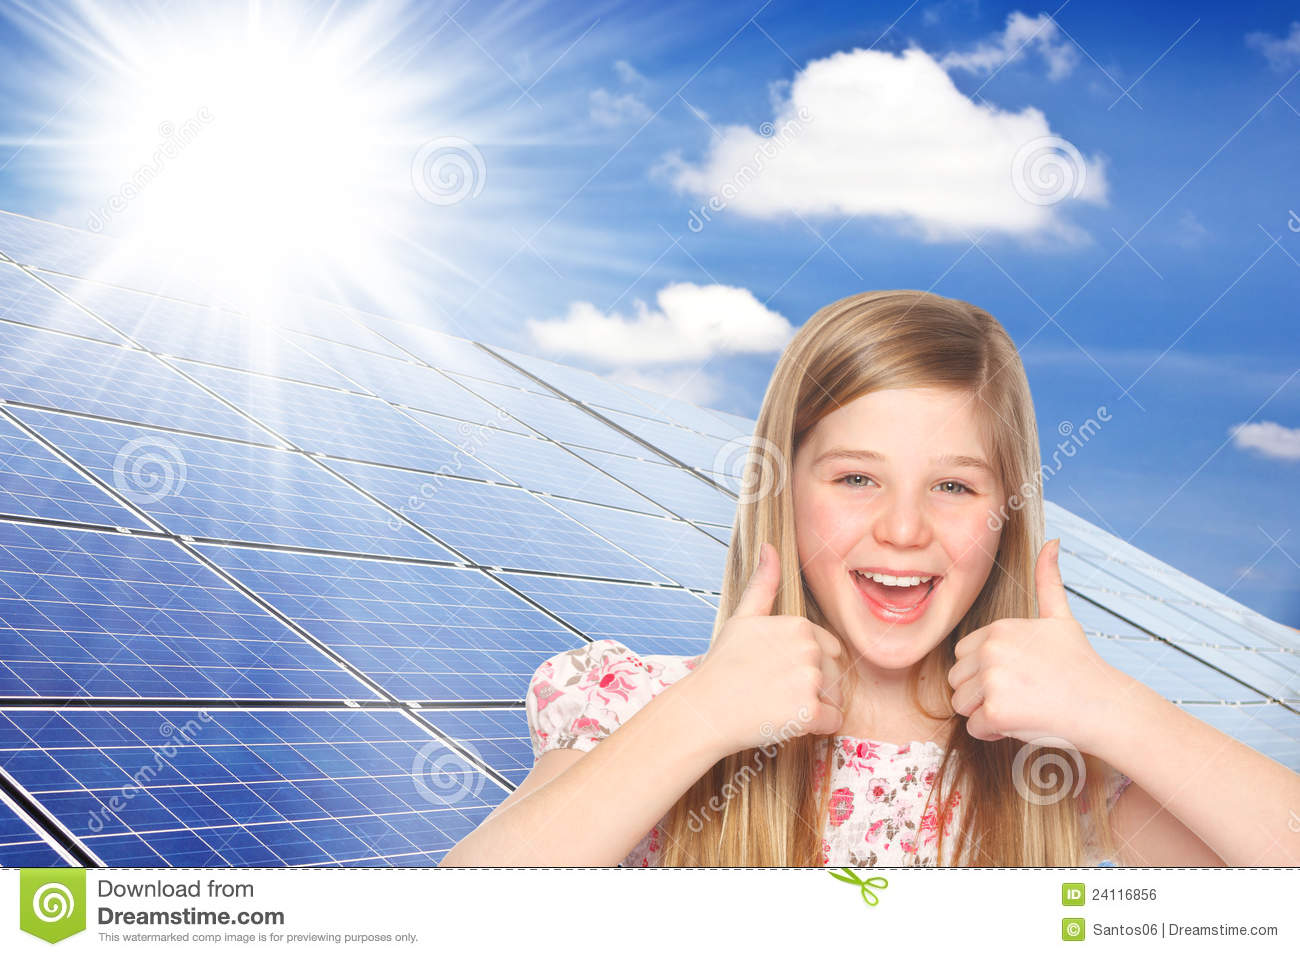 Thumbs up for solar power